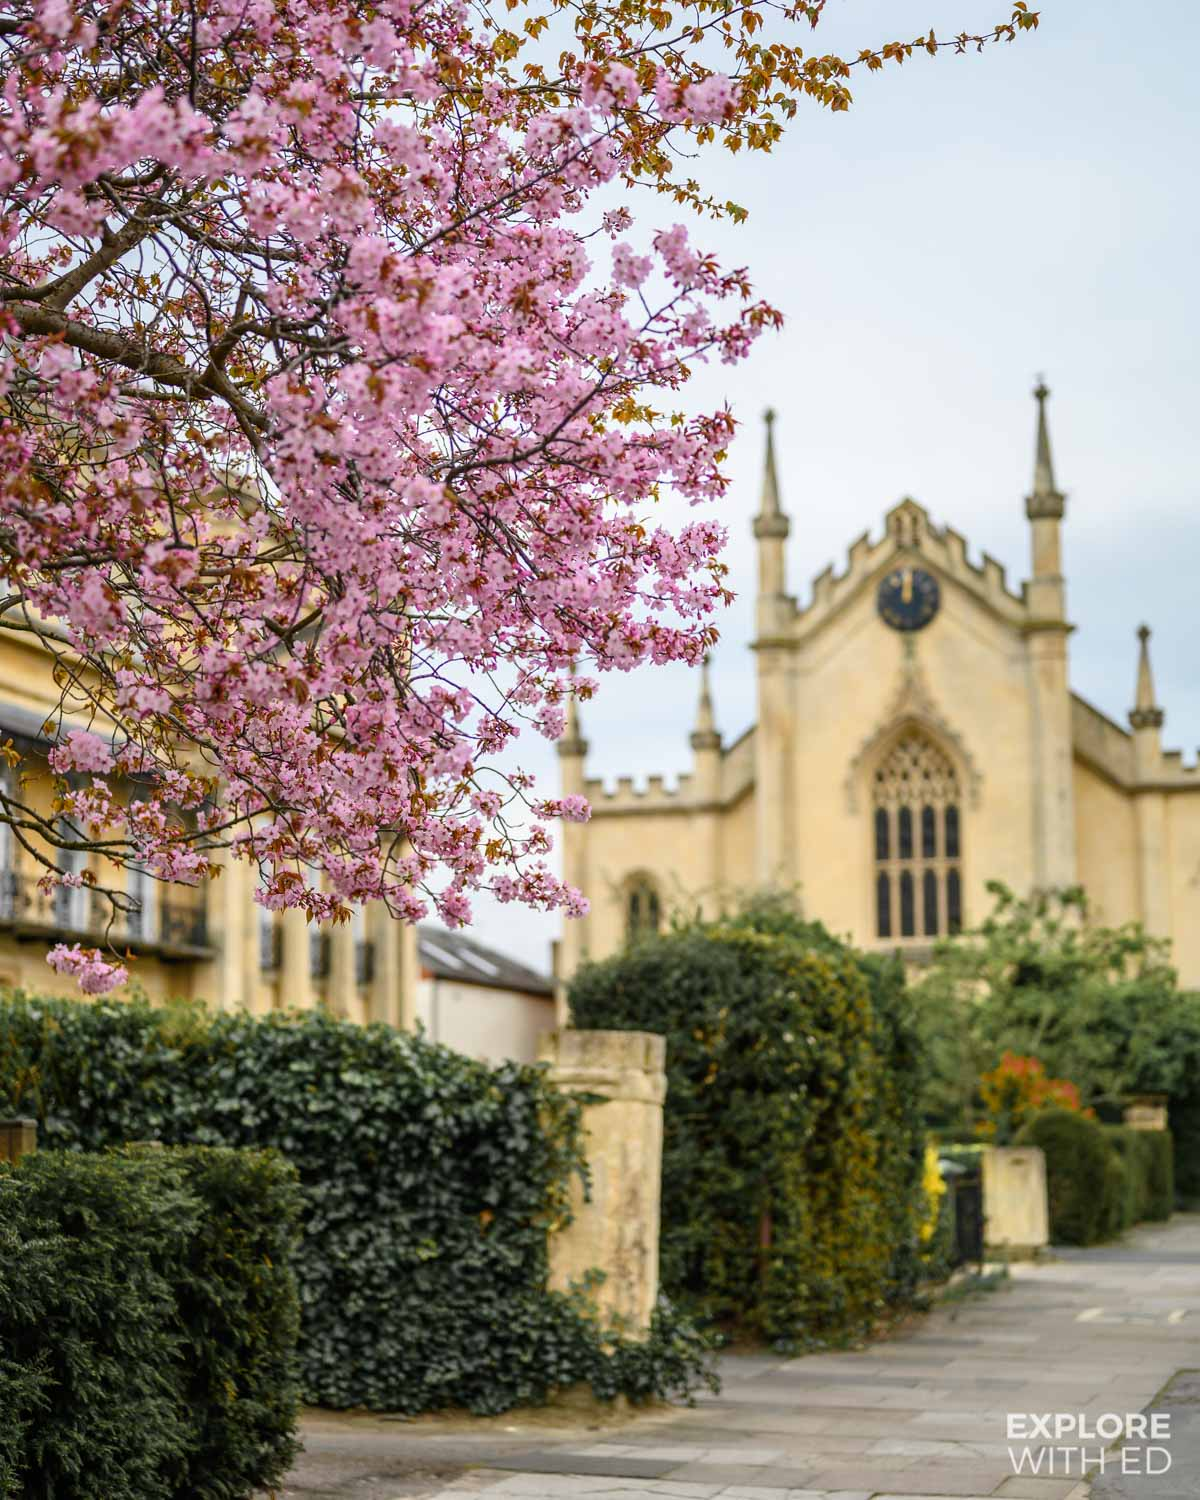 A lovely day trip guide to Cheltenham, England {AD}